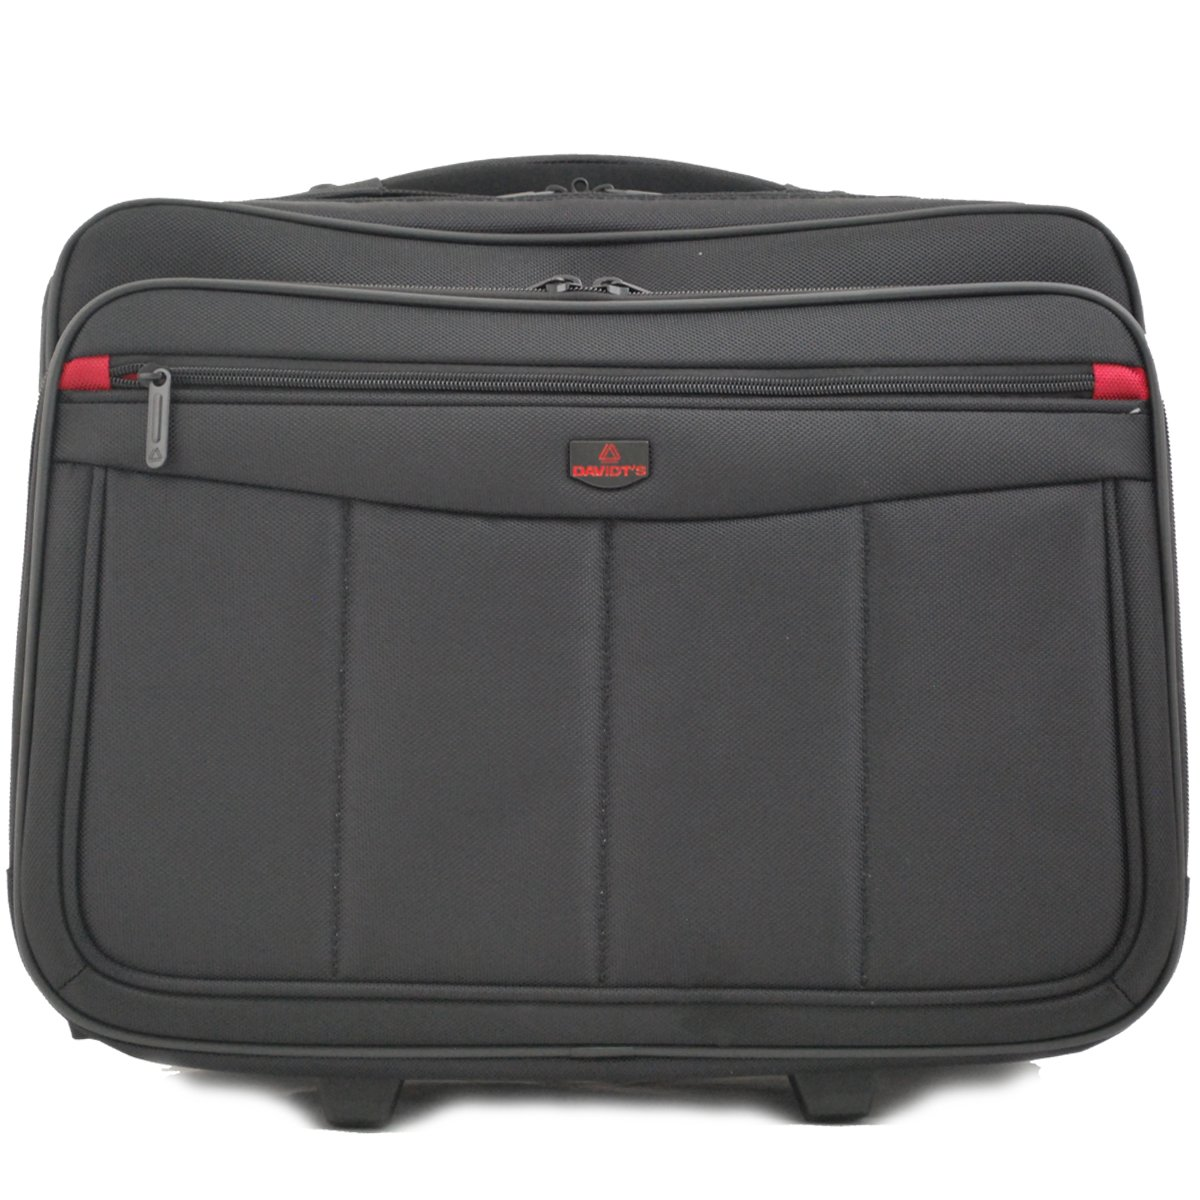 Pilot-Case trolley multi-poches DAVIDT'S - Noir